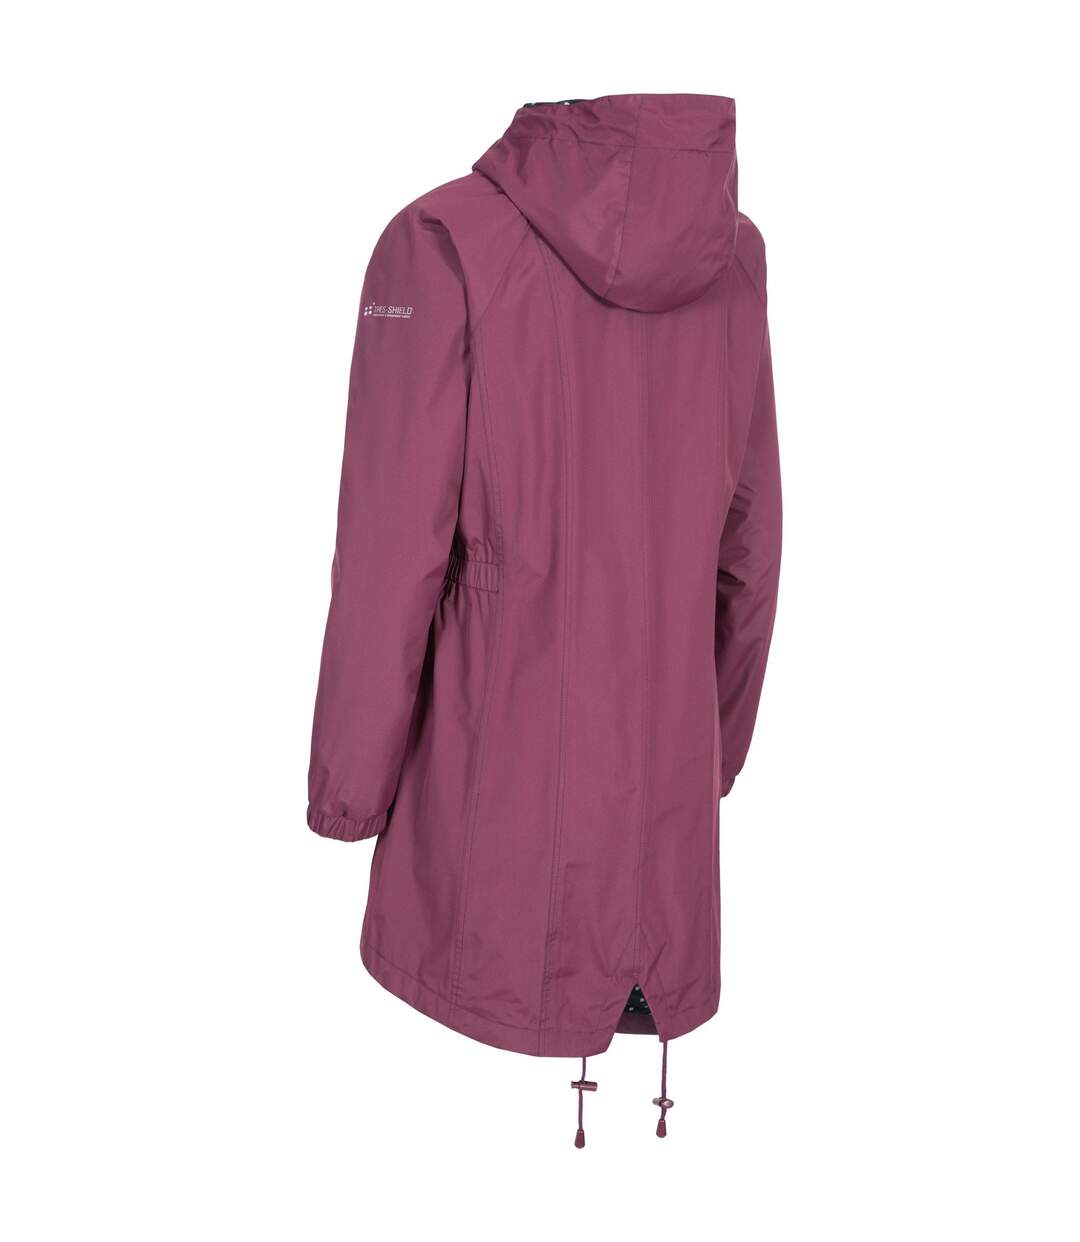 Trespass Womens/Ladies Waterproof Shell Jacket (Fig) - UTTP4040